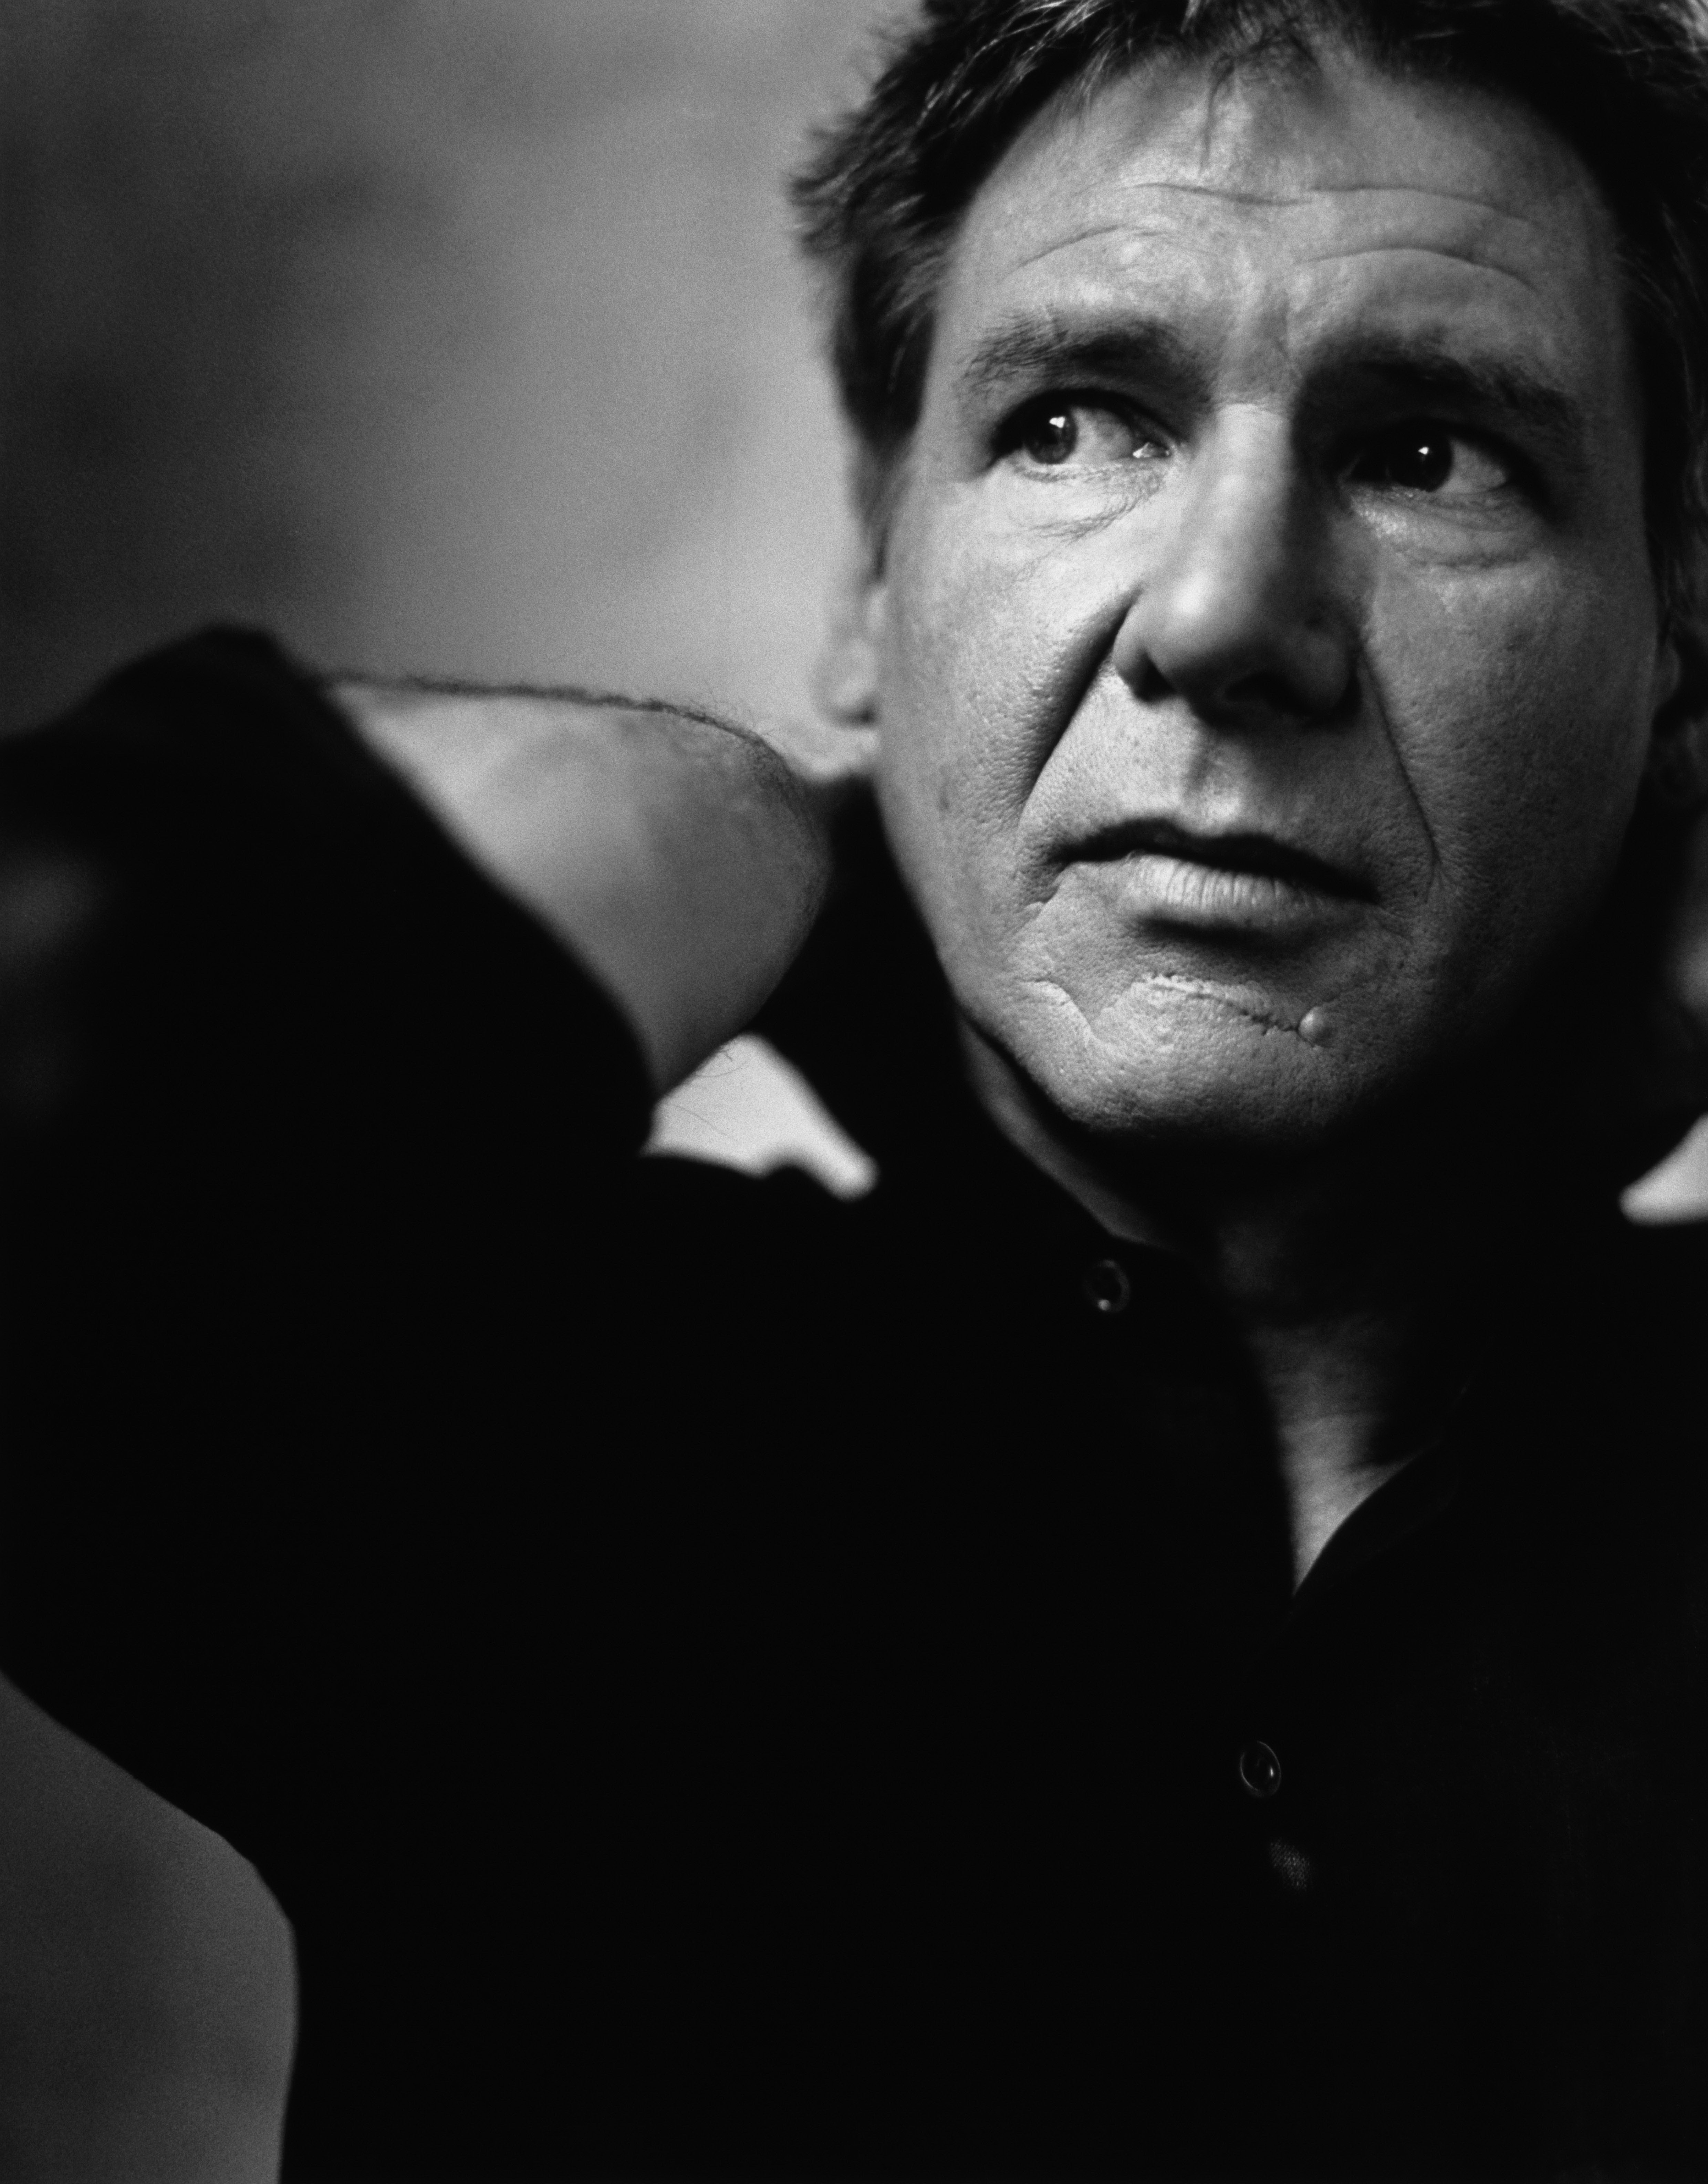 Men grayscale harrison Ford HD Wallpaper